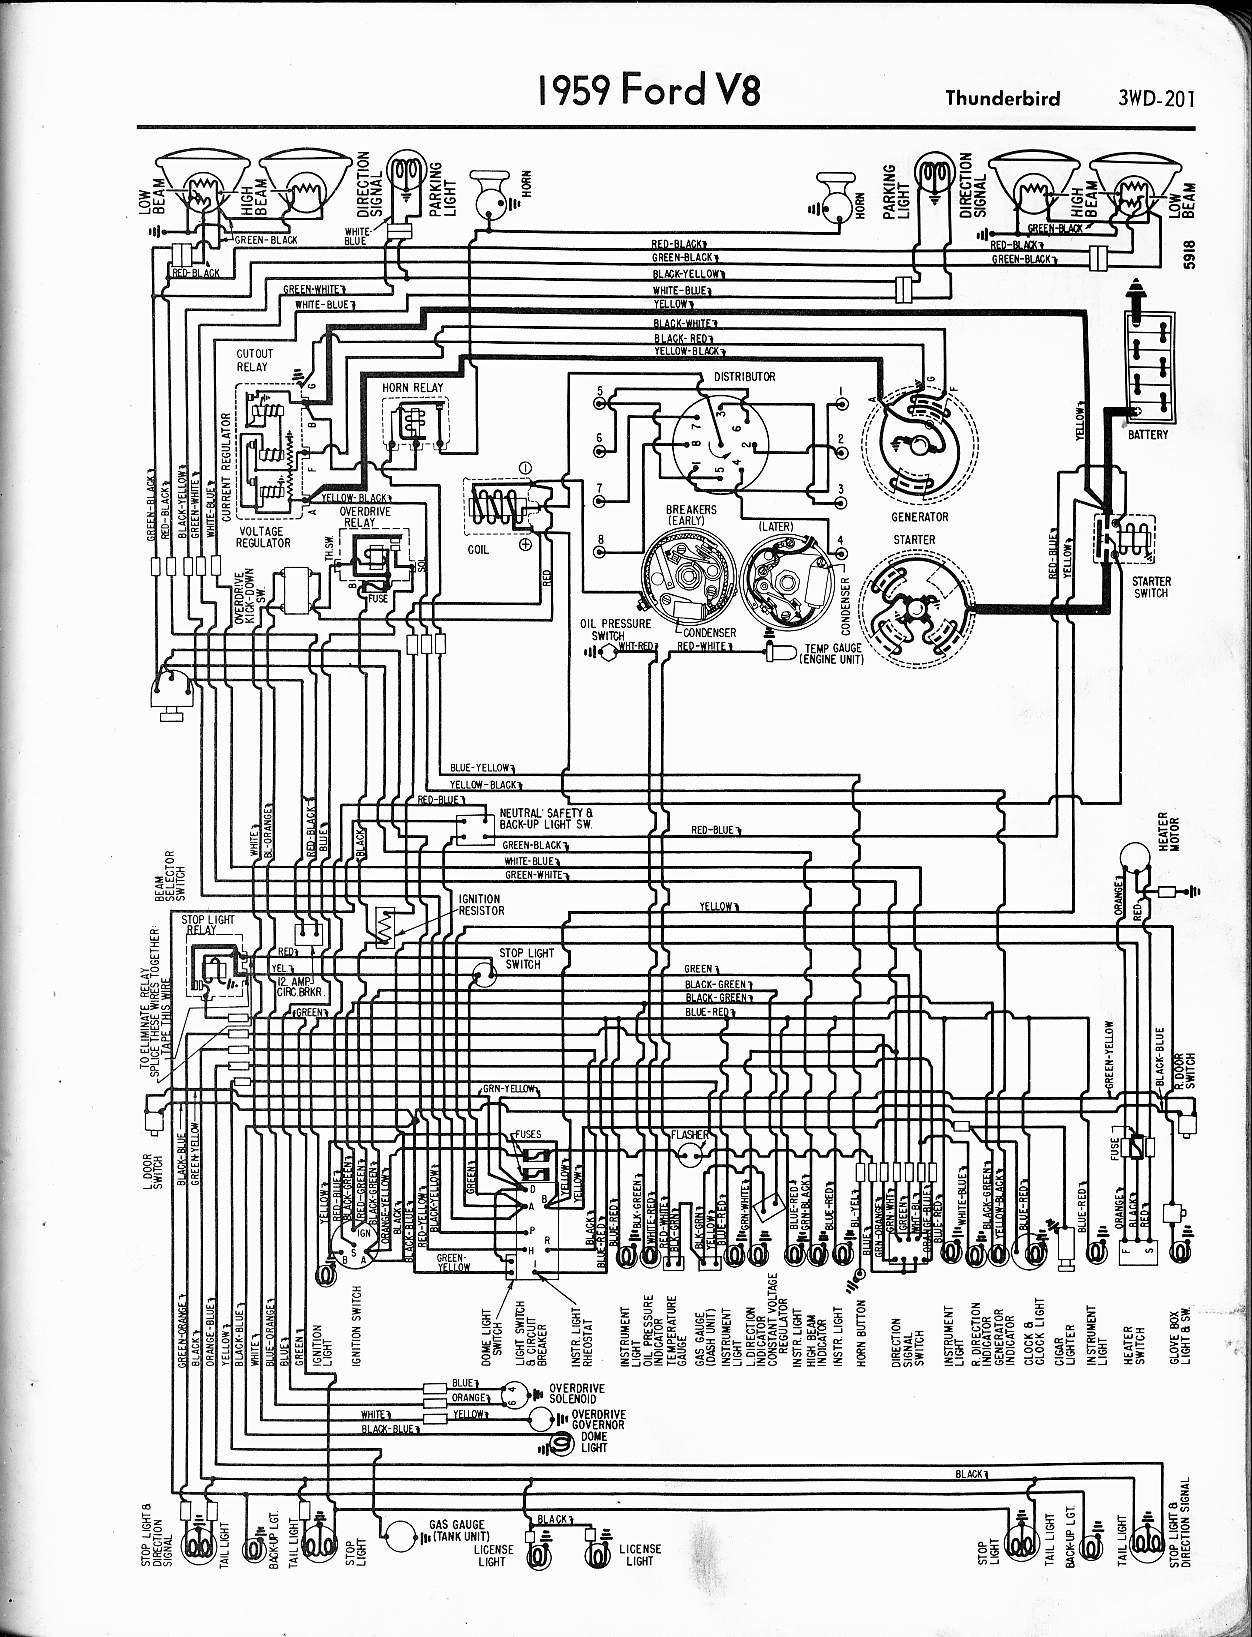 1959 Ford F100 Wiper Motor Wiring Diagram - Wiring Info • Afi Wiper Motor Wiring Diagram on 4 wire ls wiring diagram, wiper switch wiring diagram, windshield wiper motor diagram, 02 corvette wiper motor diagram, 67 firebird wiper harness diagram, afi's diagram, afi wiper motor parts, afi windshield wipers, afi wipers for boats, afi wiper motor installation, afi 2000 wiper motor, dc reversing relay wiring diagram,